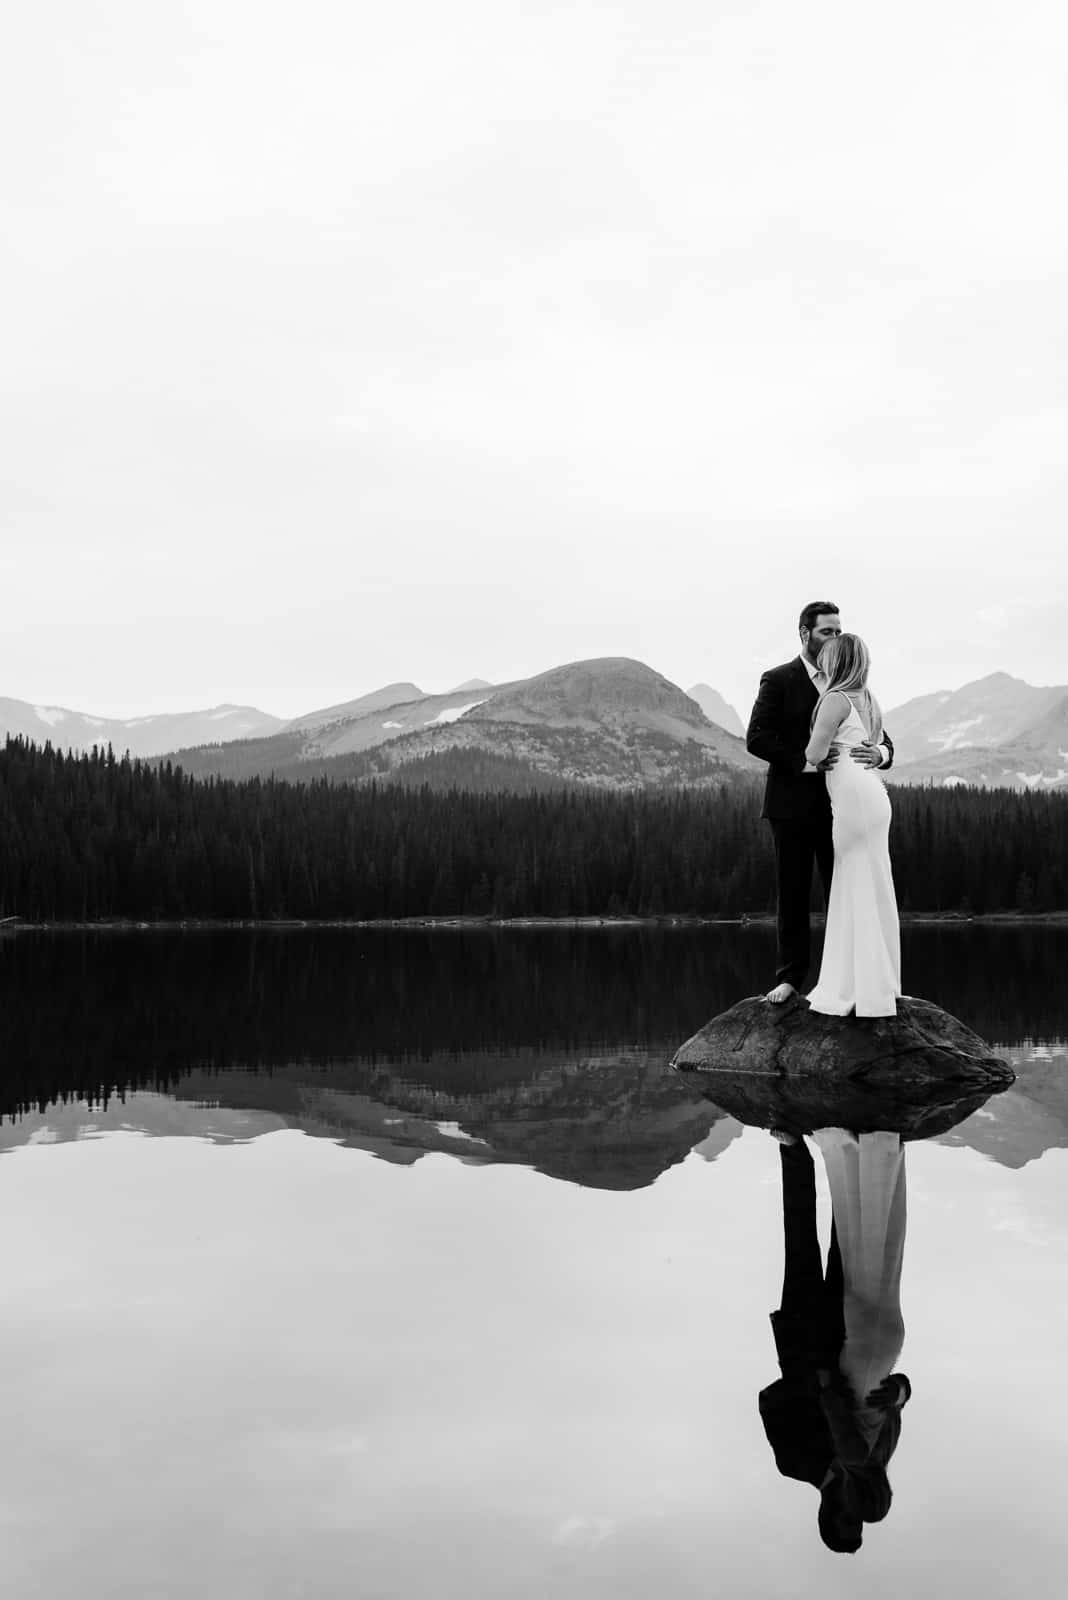 Romantic Elopement Photography | Josie V Photography